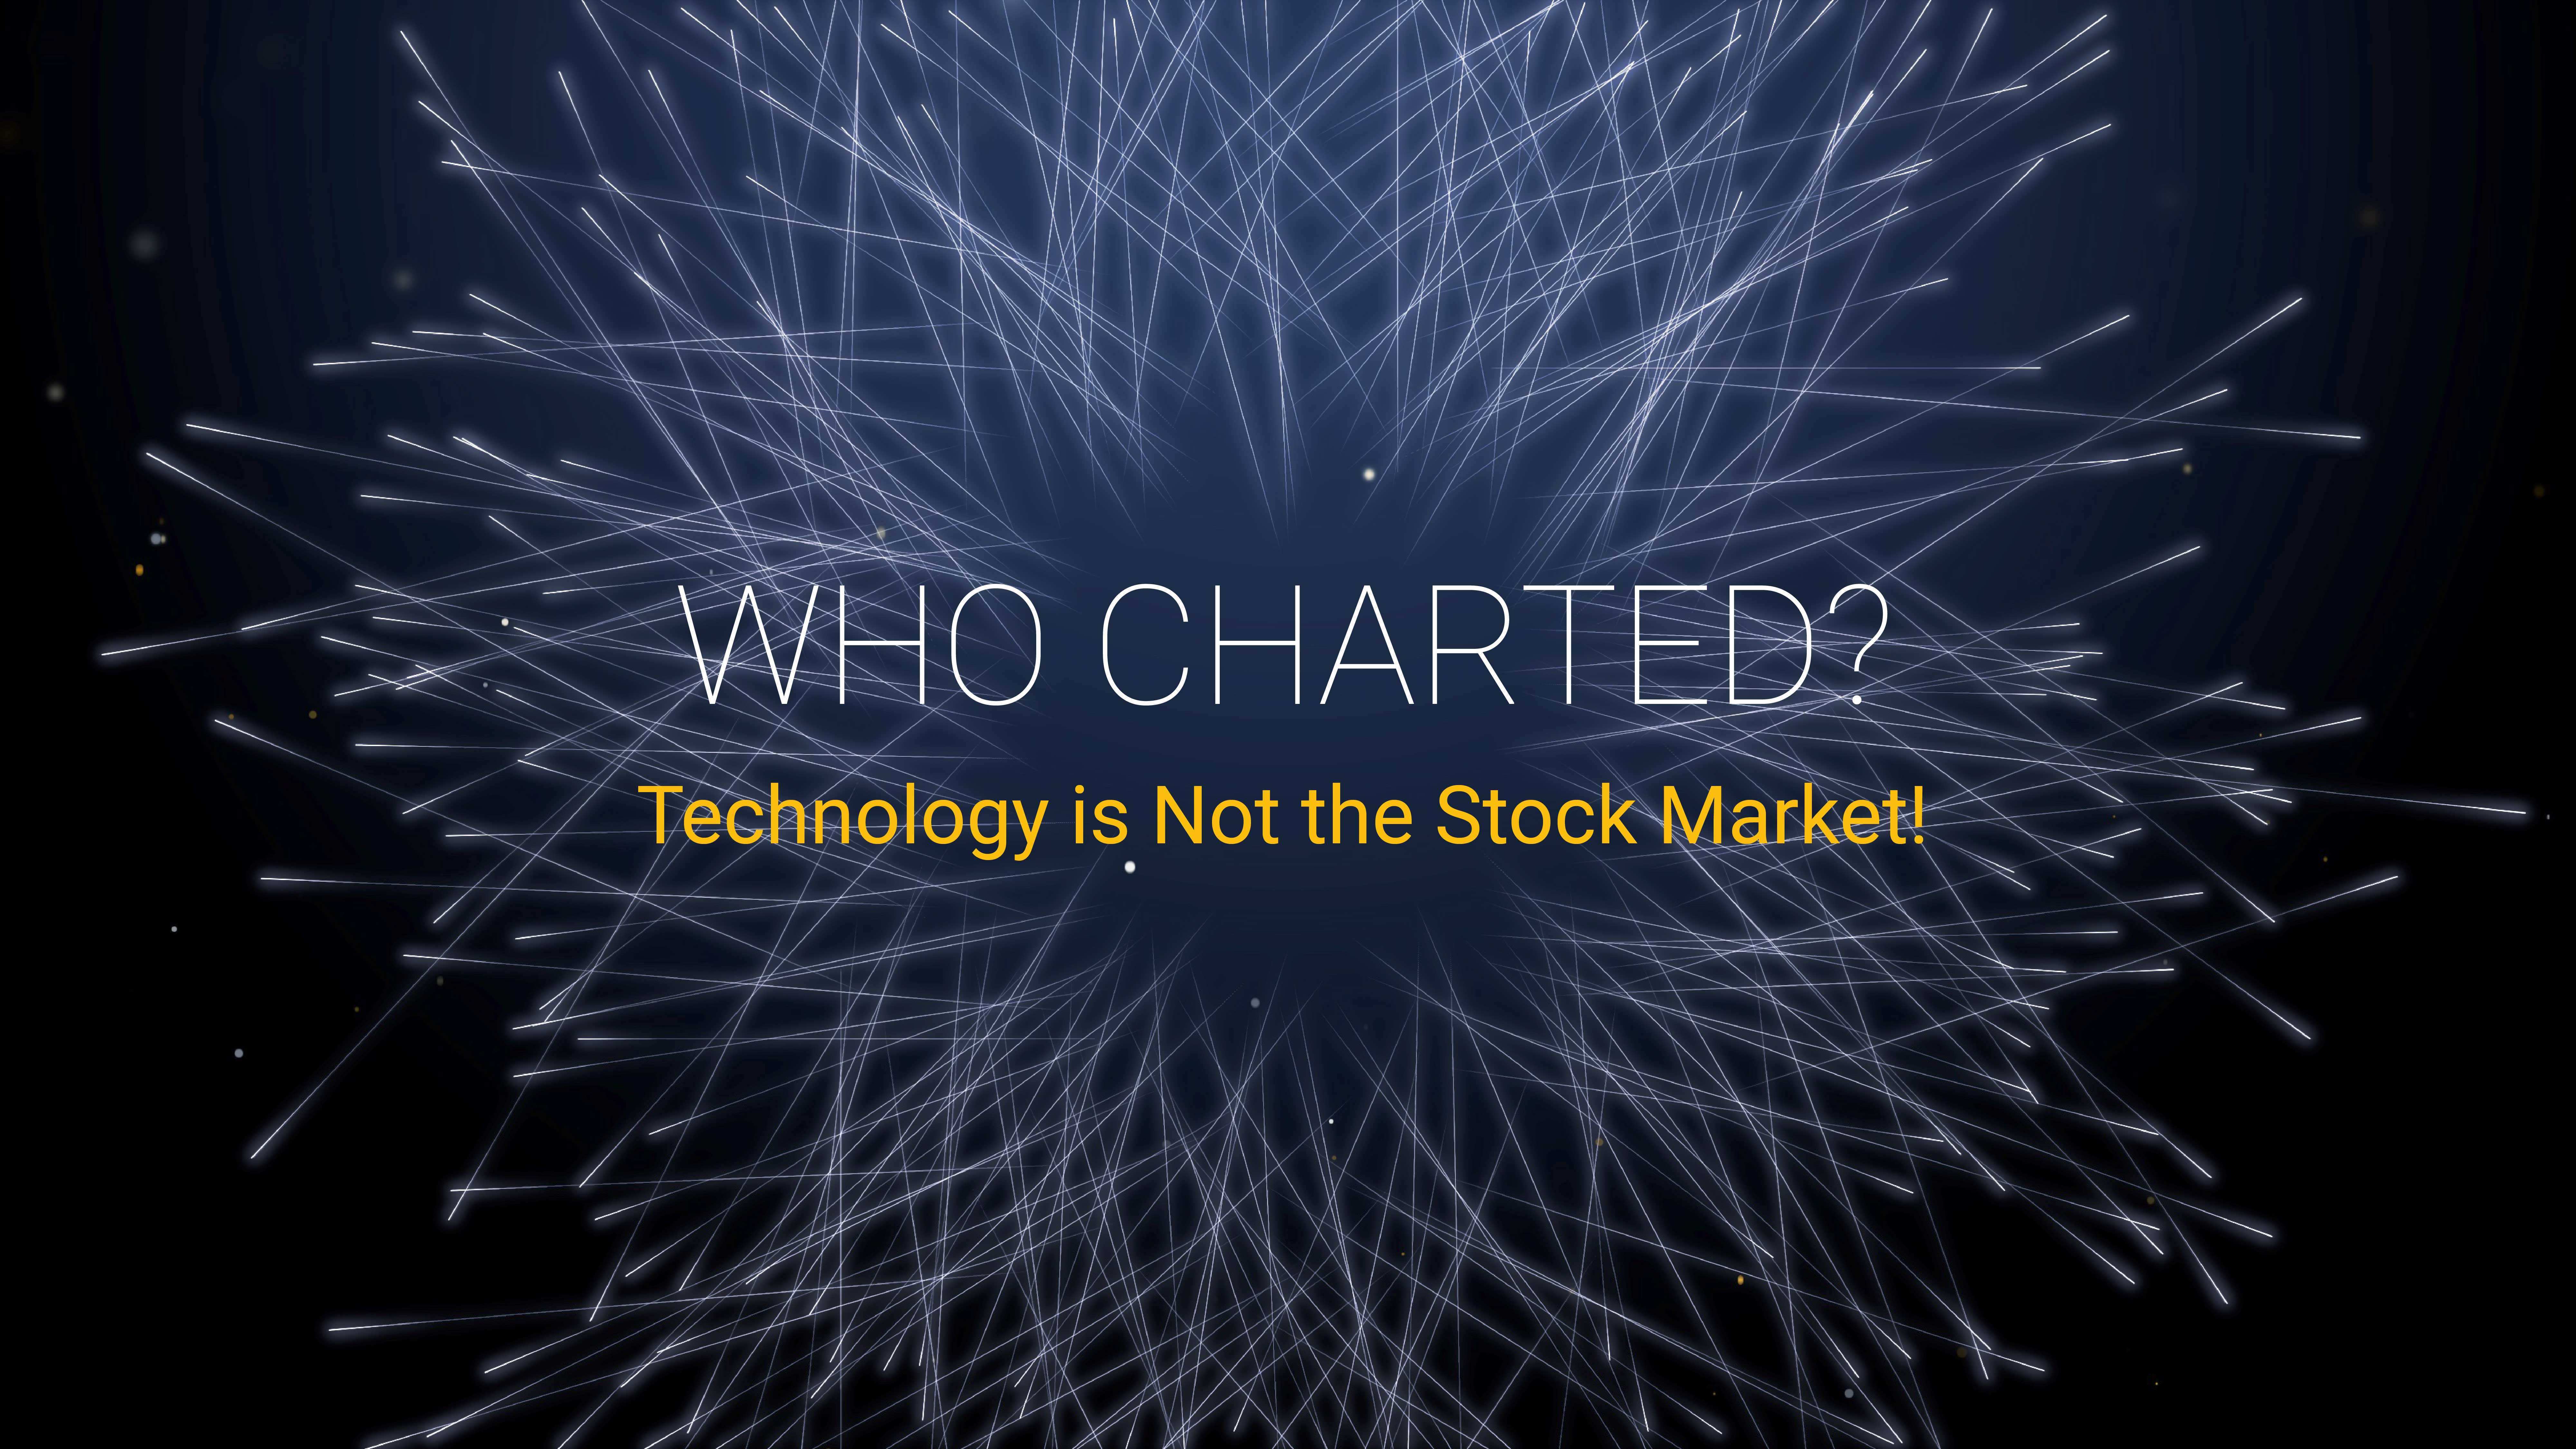 Who Charted? (E2) Technology is Not the Stock Market